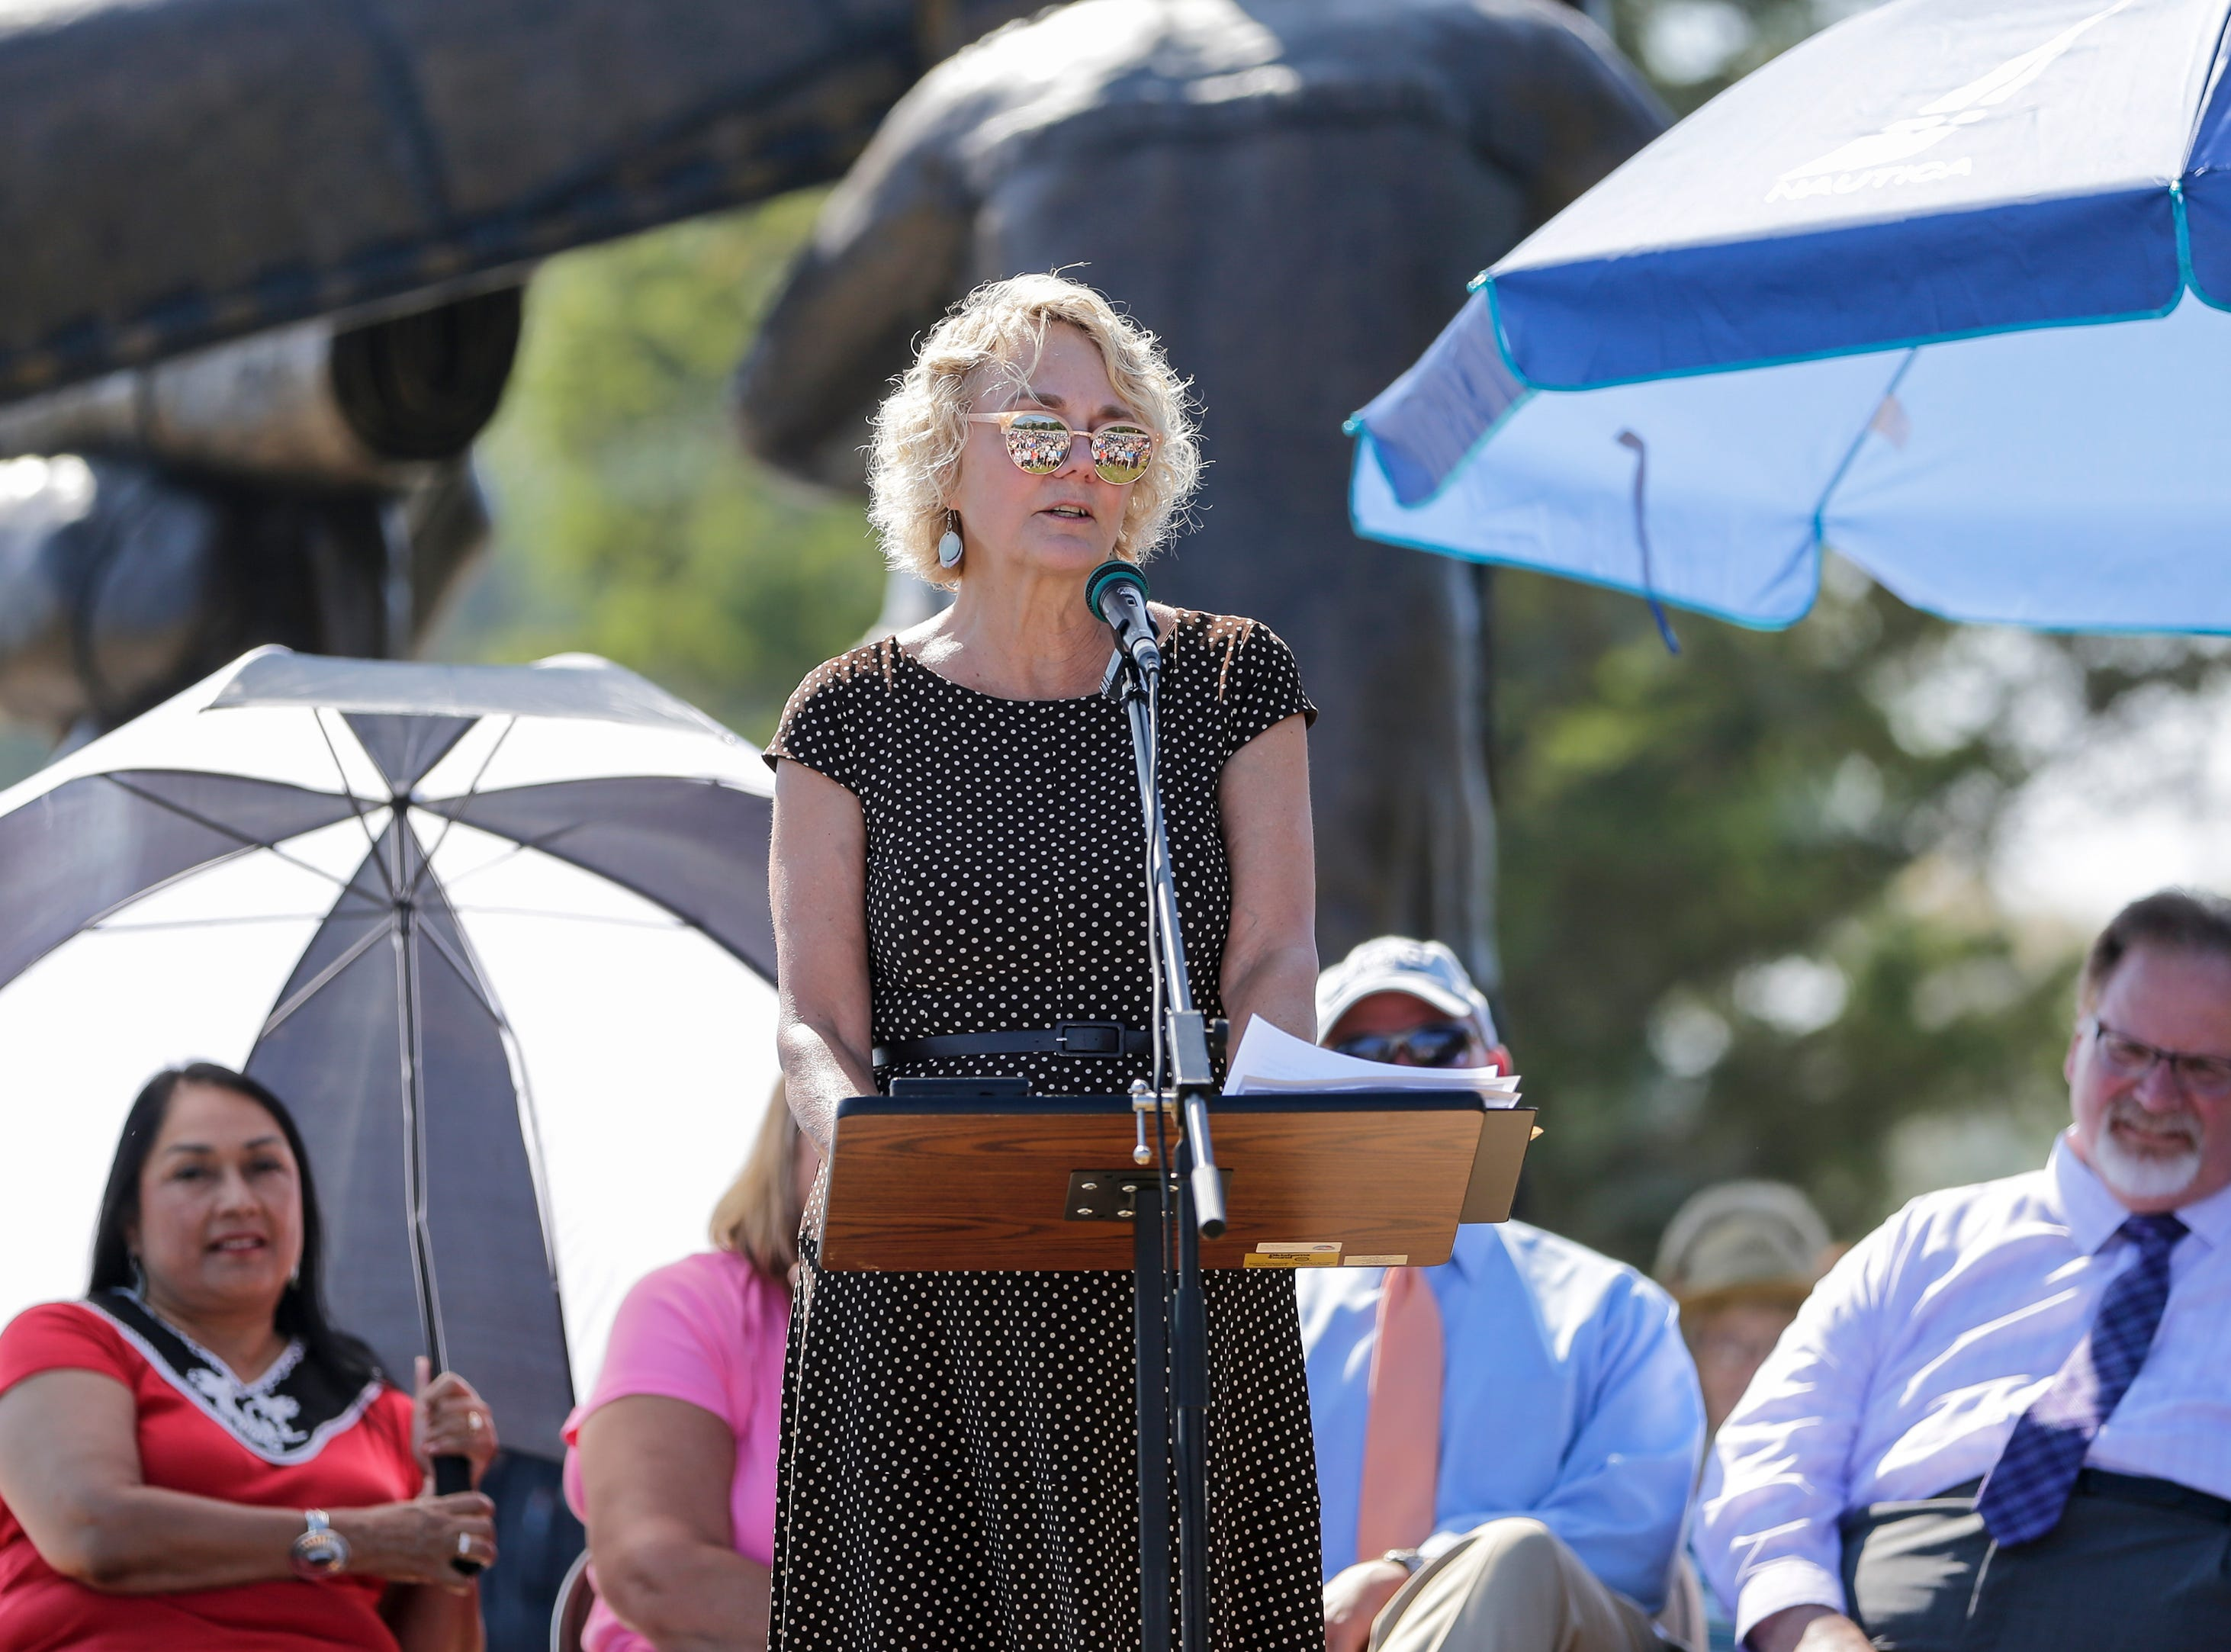 Carol Wergin, co-chair of the board of directors, speaks during the Spirit of the Rivers monument dedication Sunday, Sept. 16, 2018, in Two Rivers, Wis.